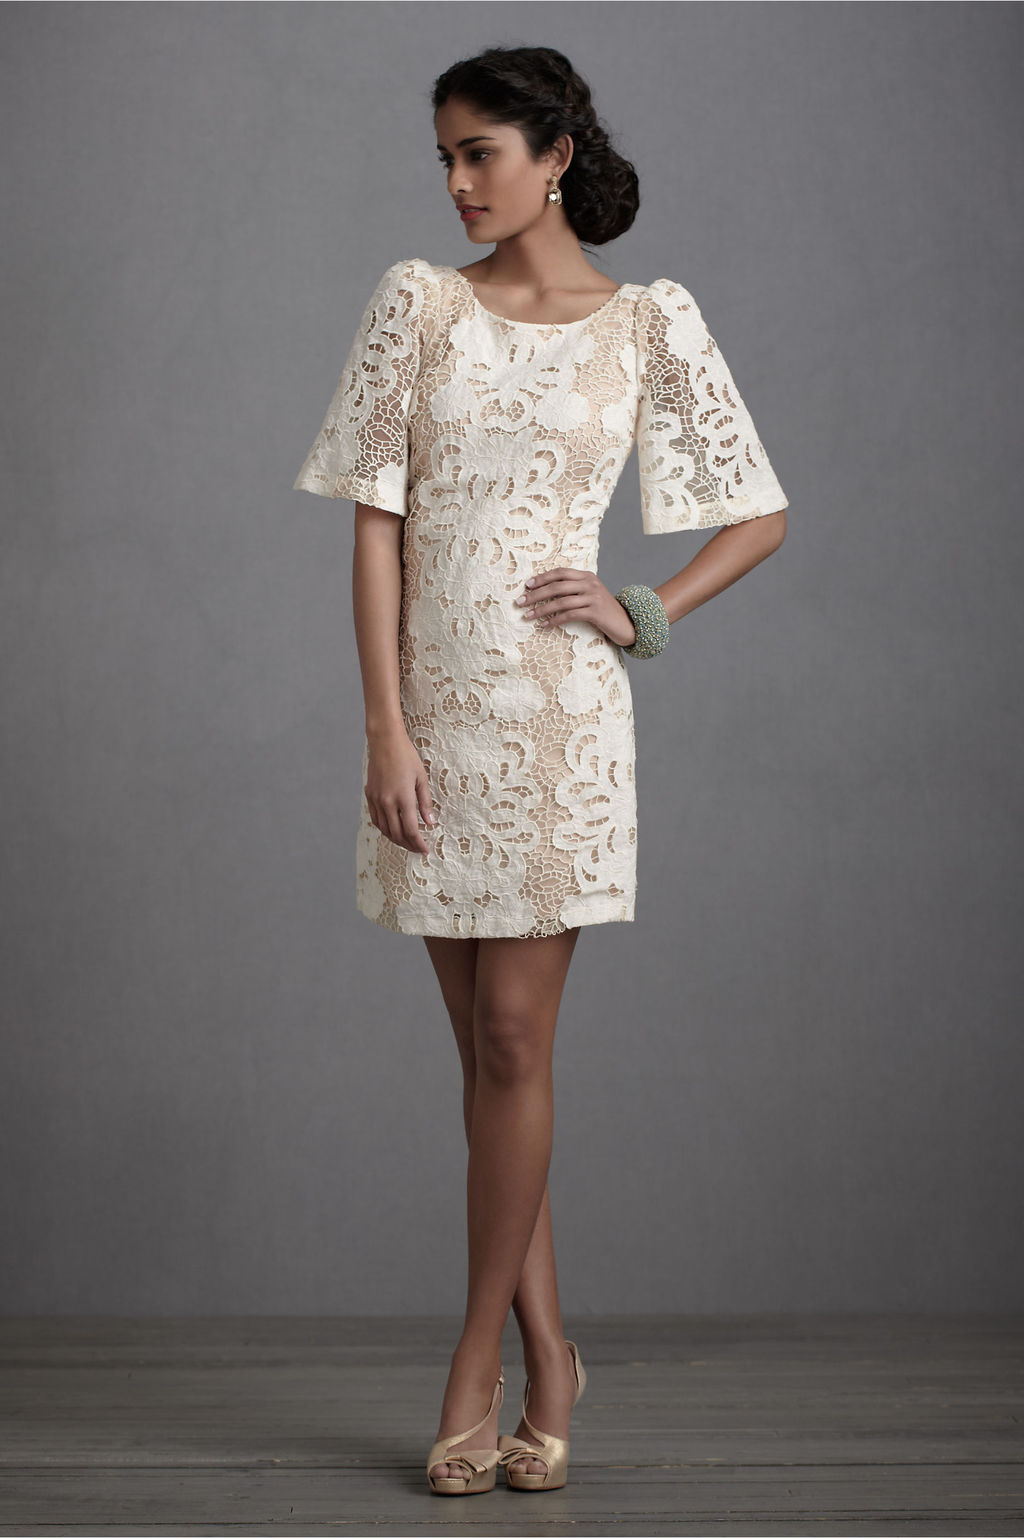 Bell-sleeve-wedding-reception-dress-ivory-lace-by-bhldn.full